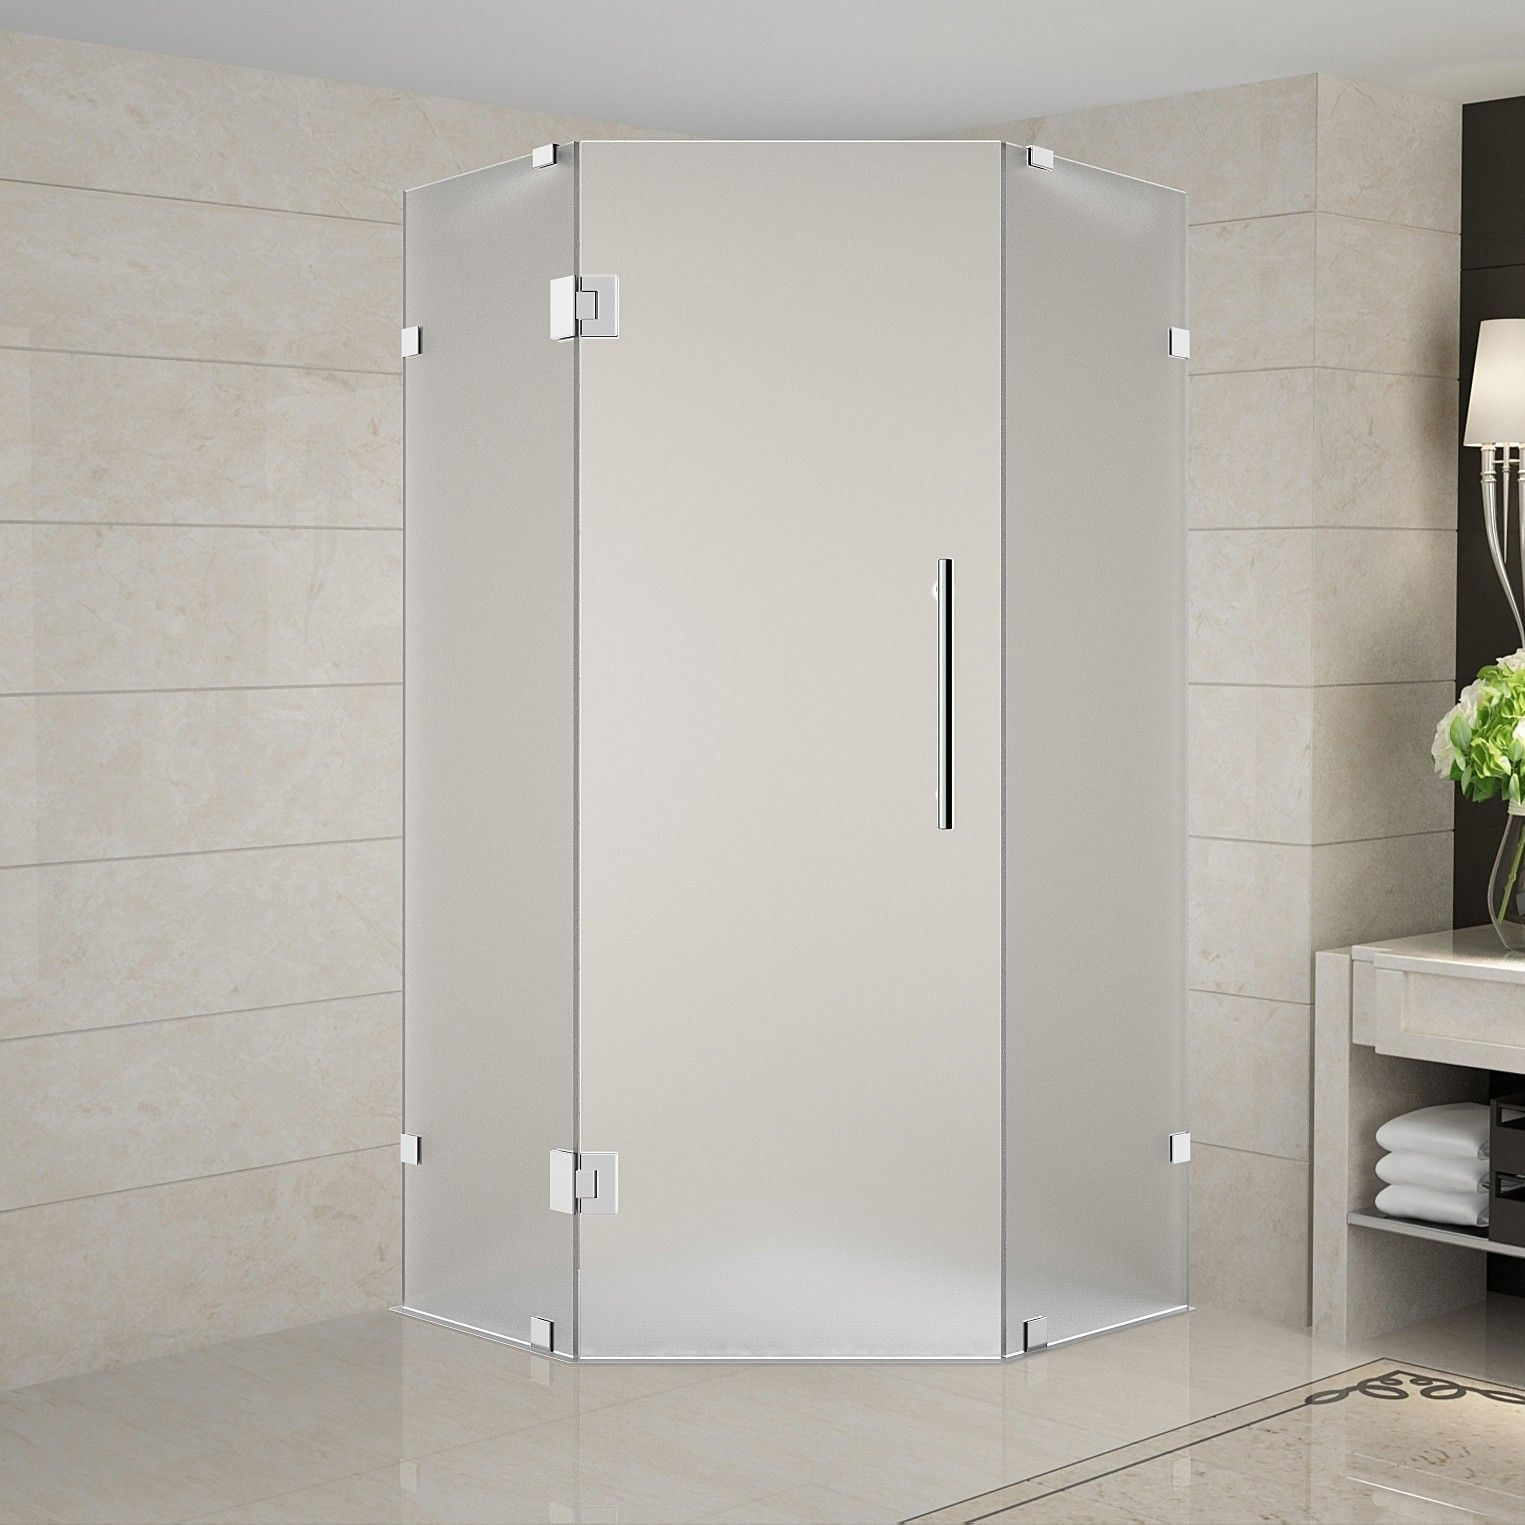 Neoscape 42 X 72 Neo Angle Hinged Shower Enclosure Shower